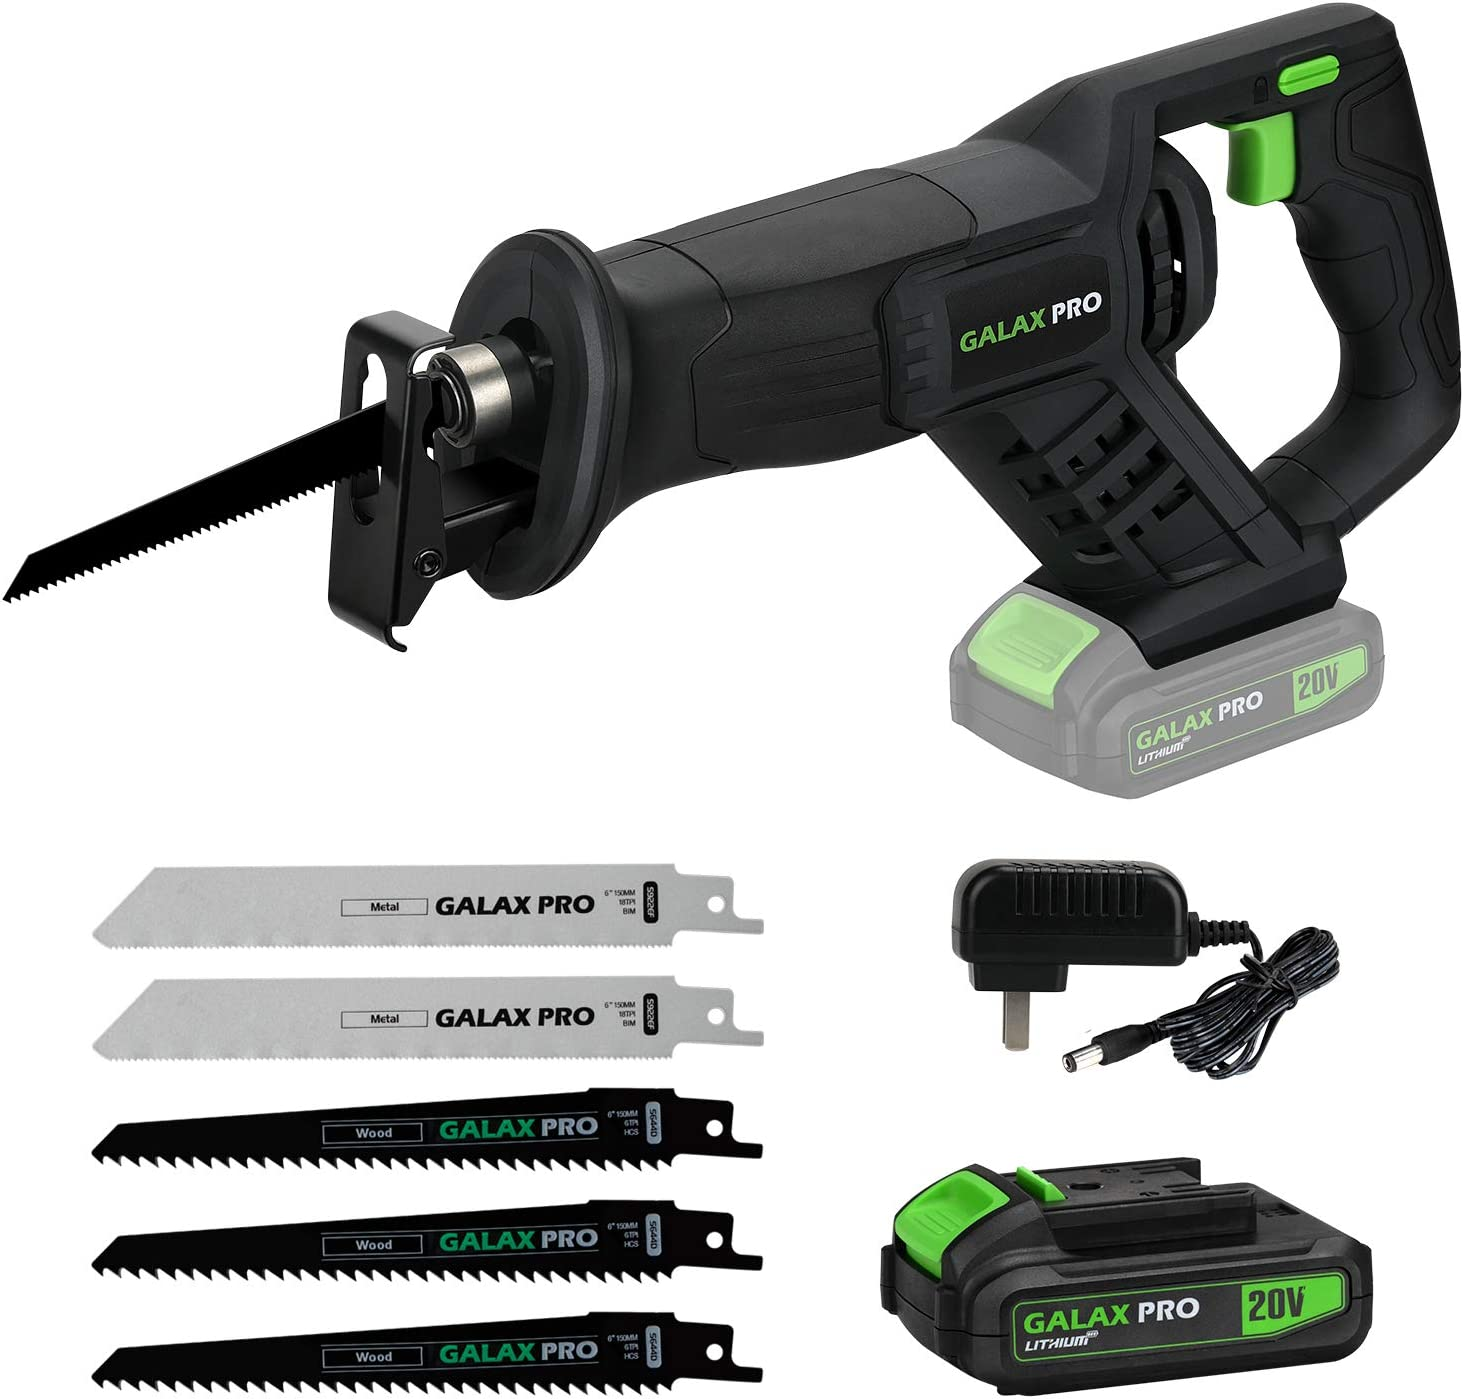 GALAX PRO Cordless Li-ion Reciprocating Saw with Fast Charger